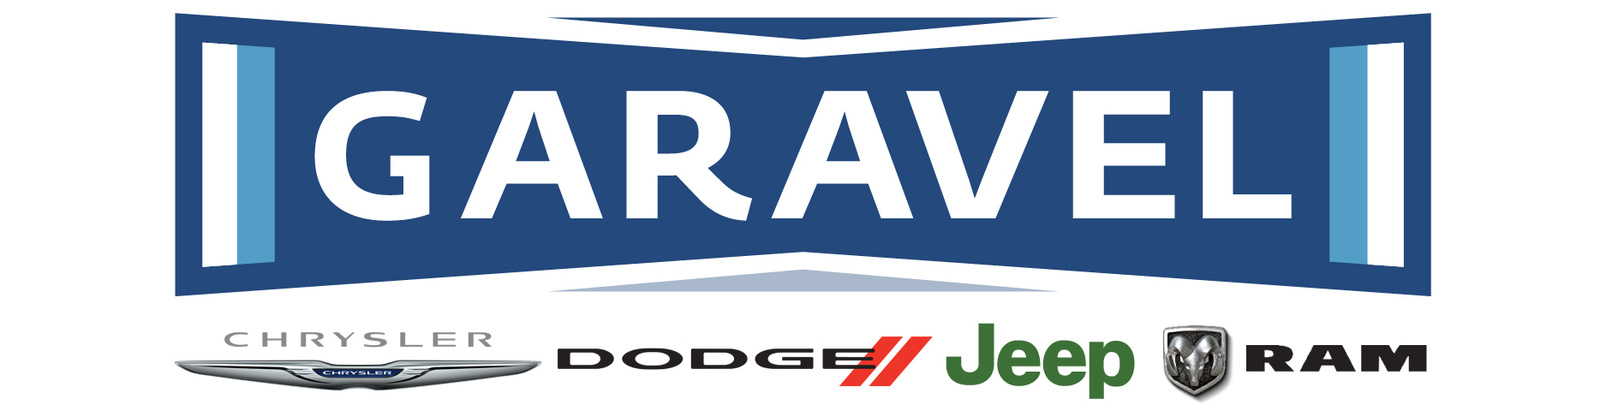 Garavel Chrysler Jeep Dodge Ram - Norwalk, CT: Read Consumer reviews